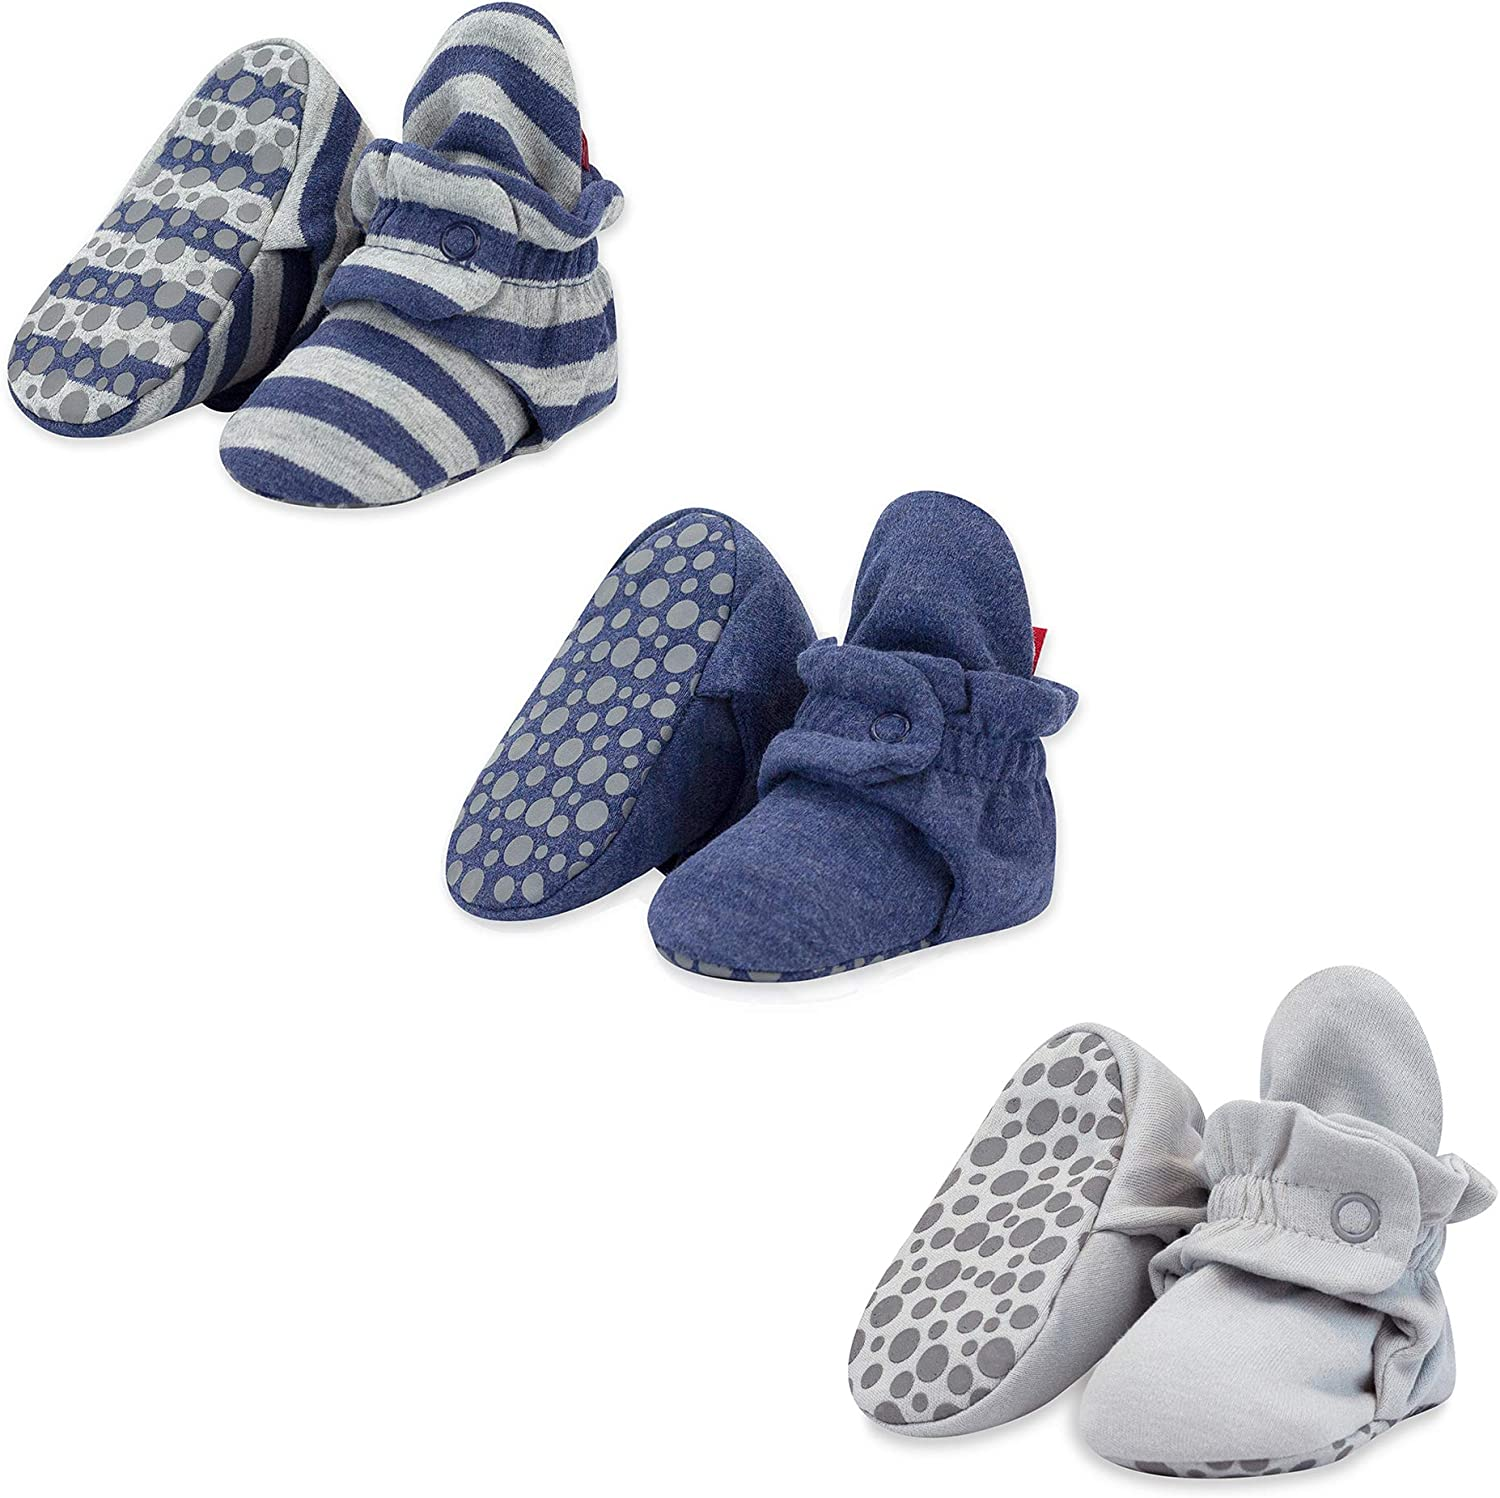 Zutano Cotton Baby Booties with Soft Soles Under blast sales Sole Stay-On Credence Gripper